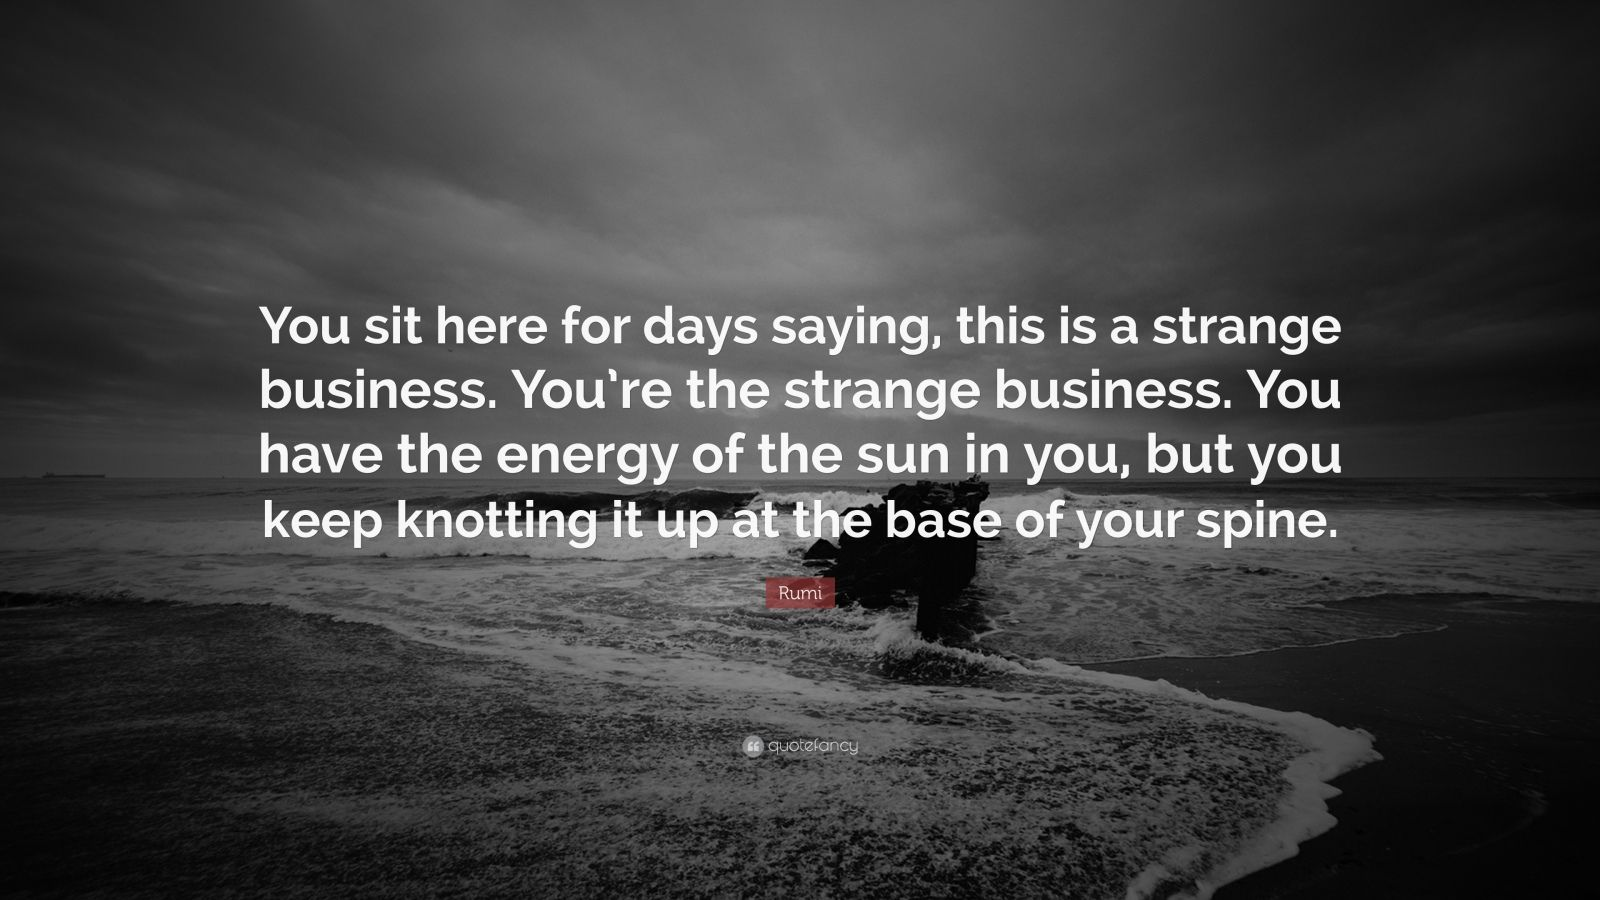 """Rumi Quote: """"You sit here for days saying, this is a strange business. You're the strange business. You have the energy of the sun in you, but you keep knotting it up at the base of your spine."""""""